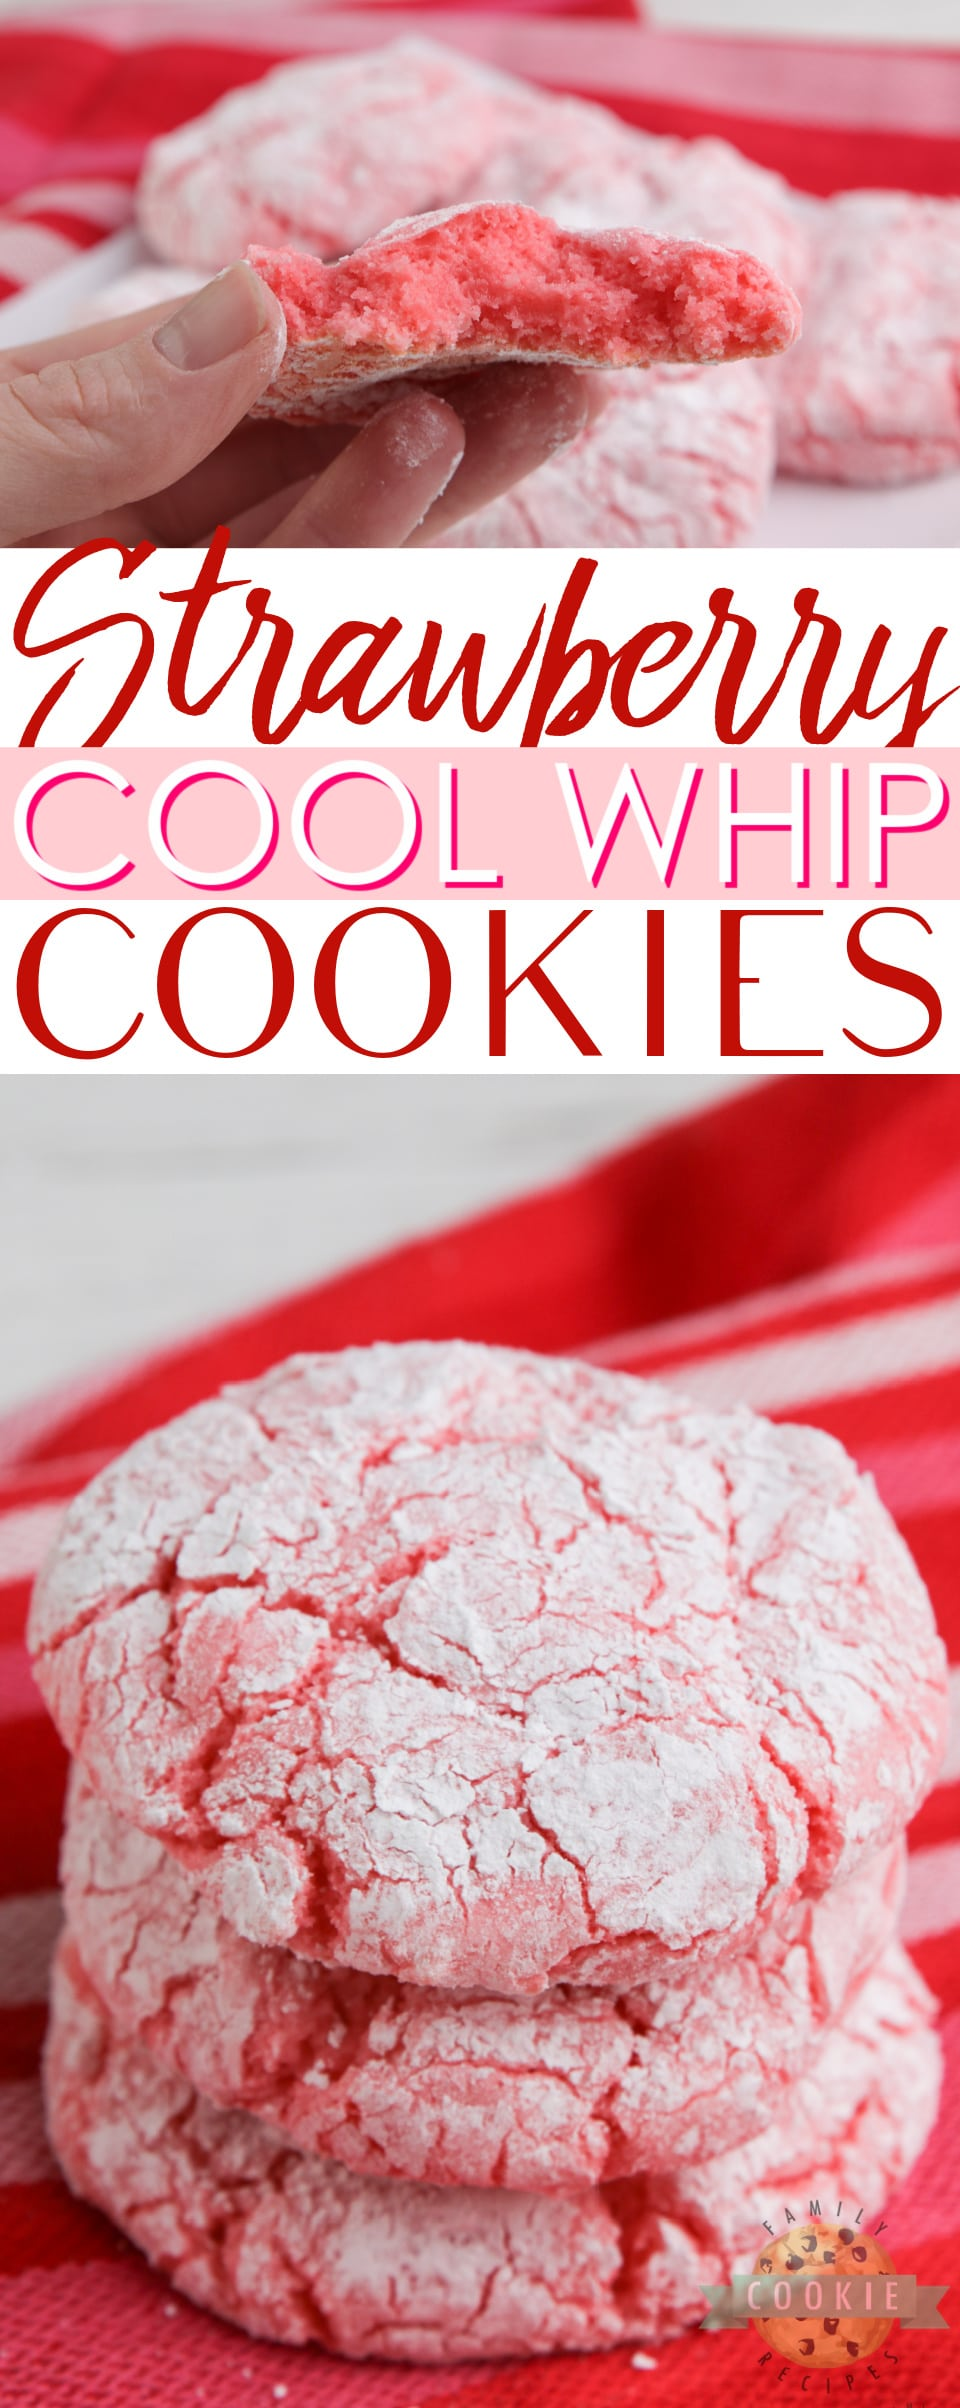 Strawberry Cool Whip Cookies made with a strawberry cake mix, Cool Whip and an egg. A lighter cookie recipe that is easy to make and with less calories than traditional cake mix cookies! via @buttergirls